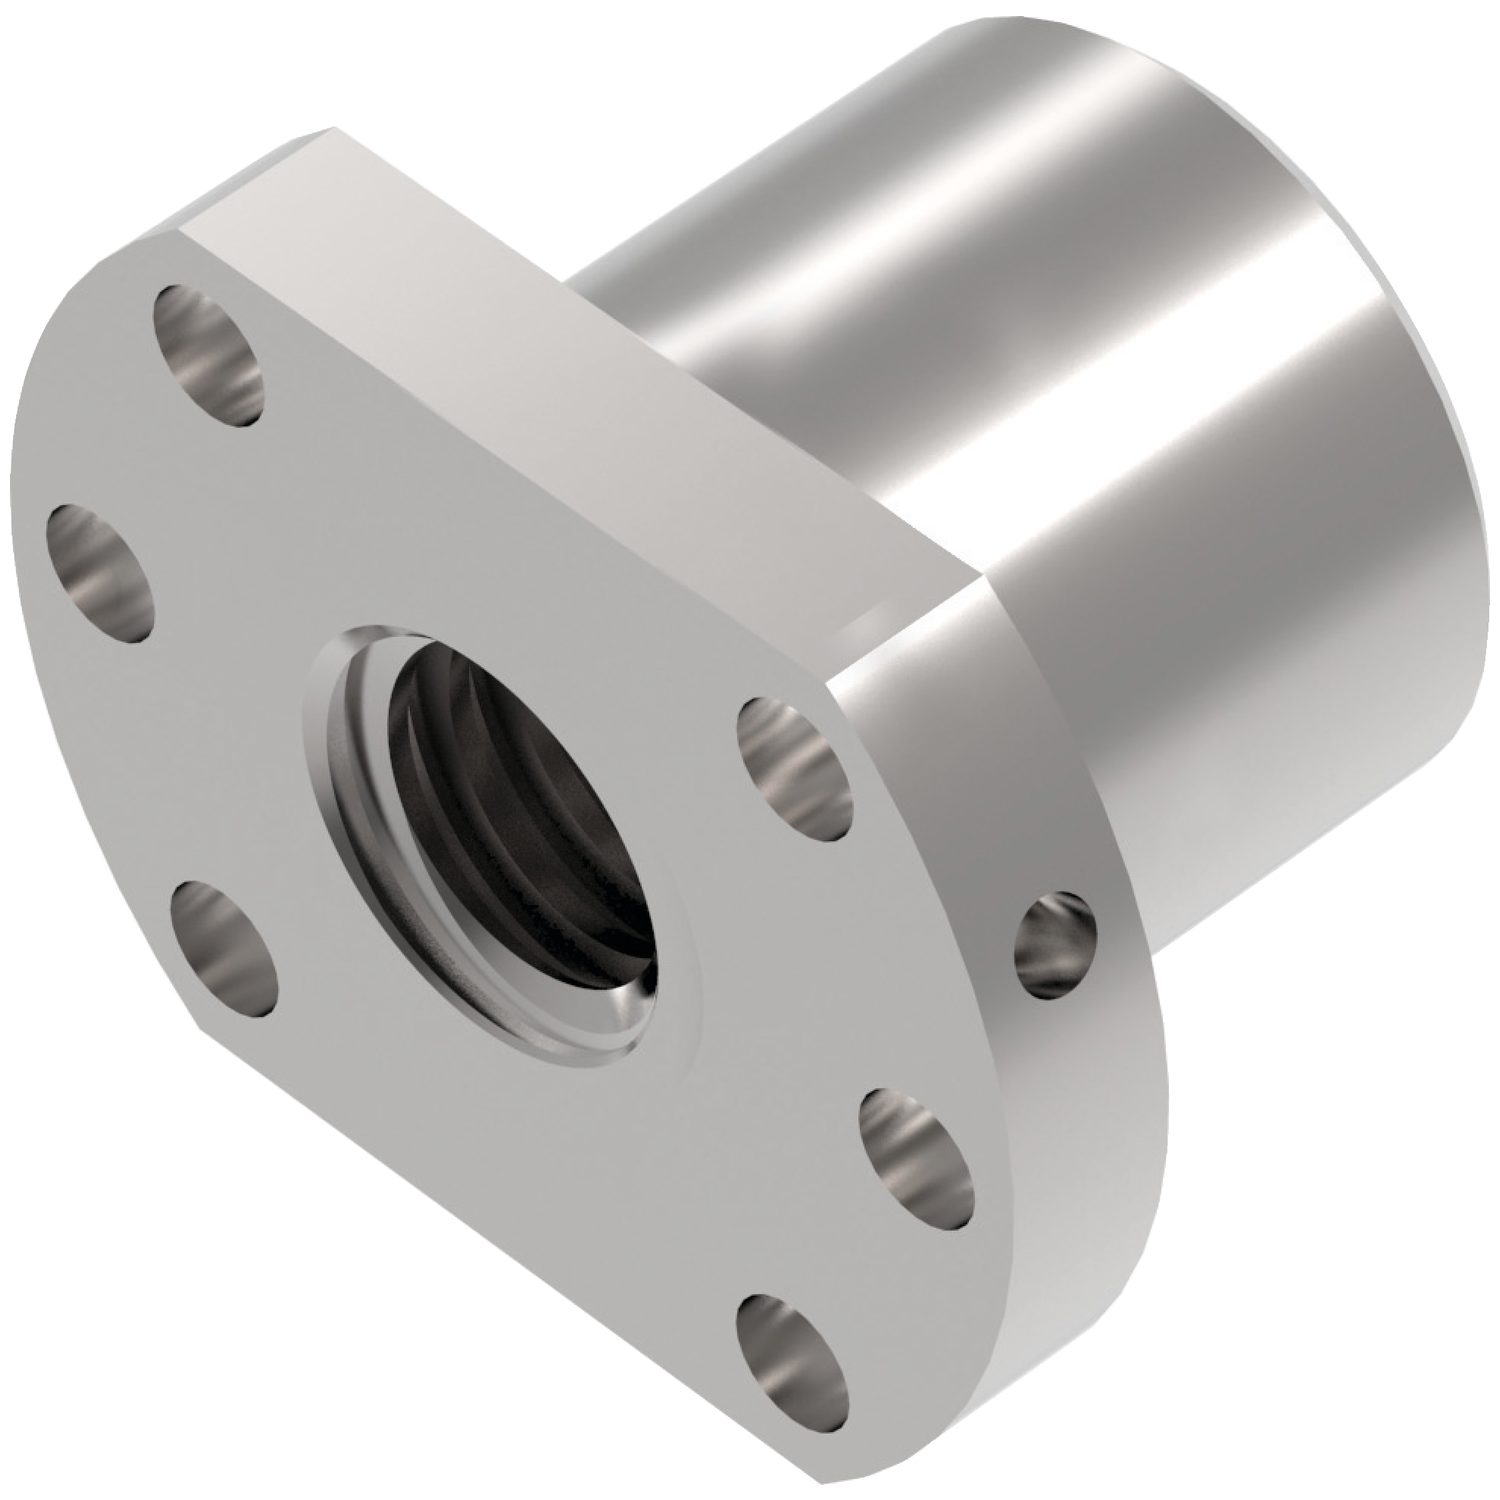 Flanged Ball Nuts Steel square nuts for lead screws. Standard nuts are right hand thread, single starts.